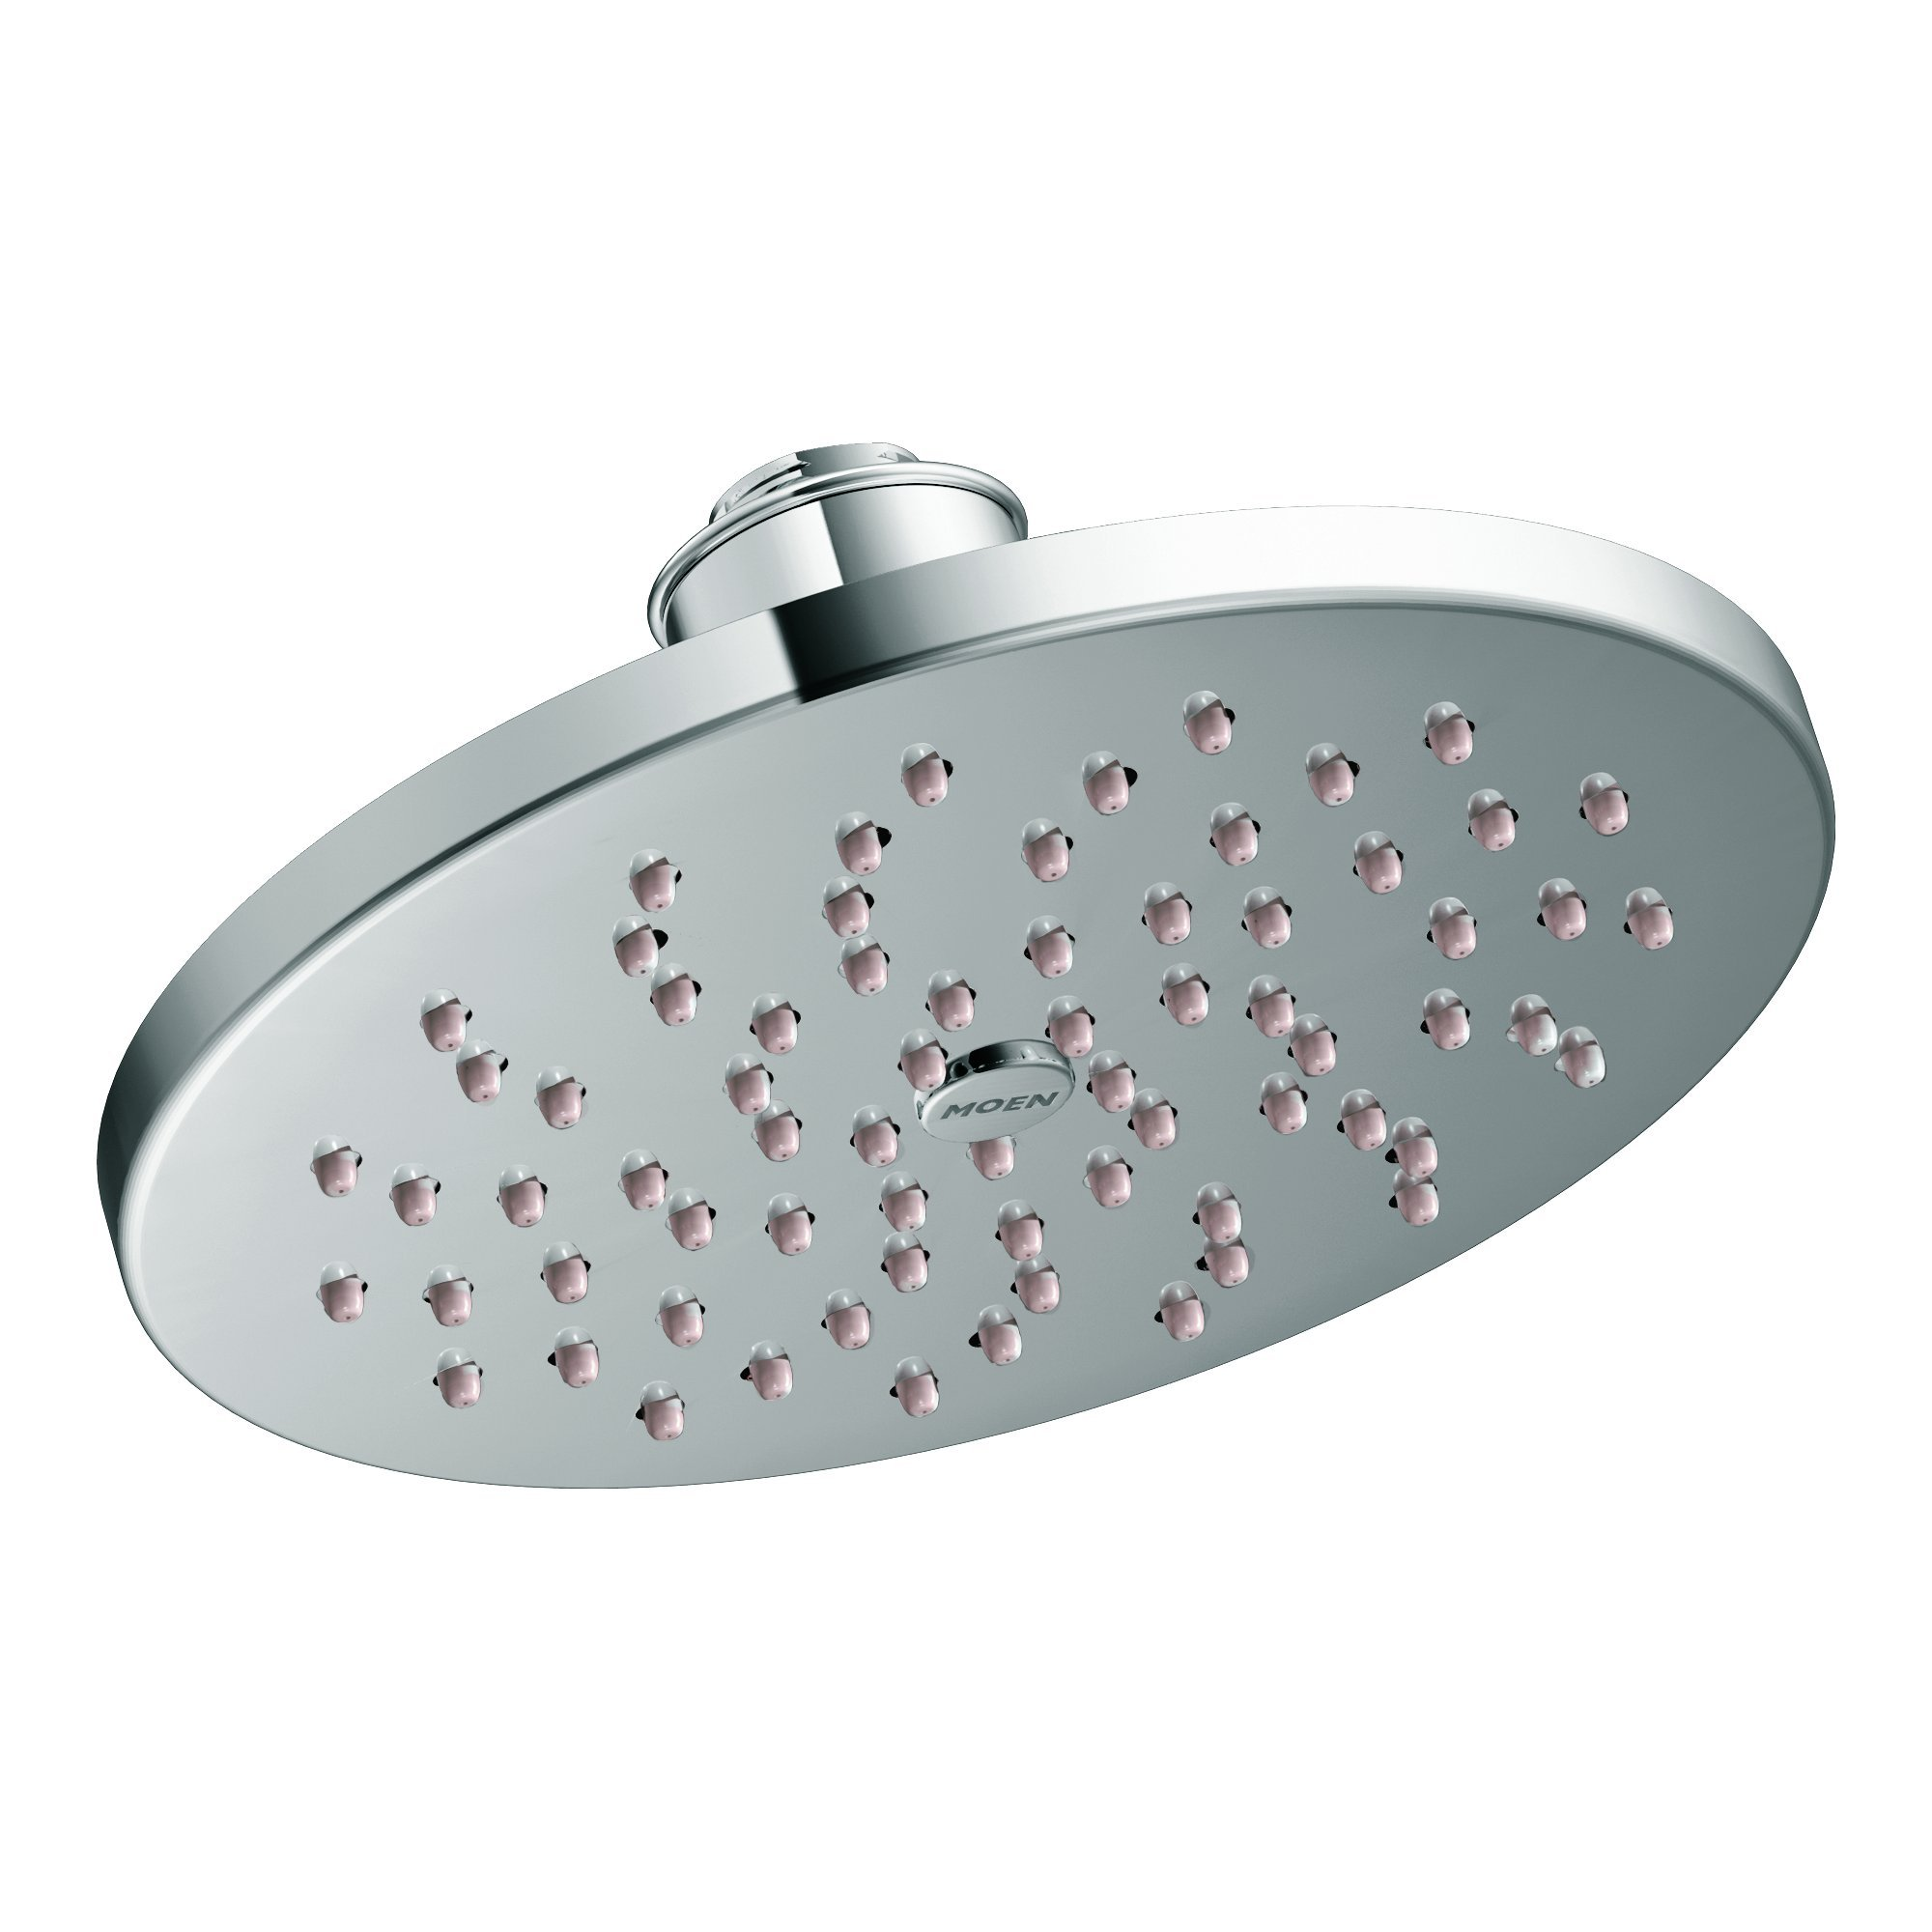 Moen S6360EP 8'' Eco-Performance Single-Function Rainshower Showerhead with Immersion Technology at 2.0 GPM Flow Rate, Chrome